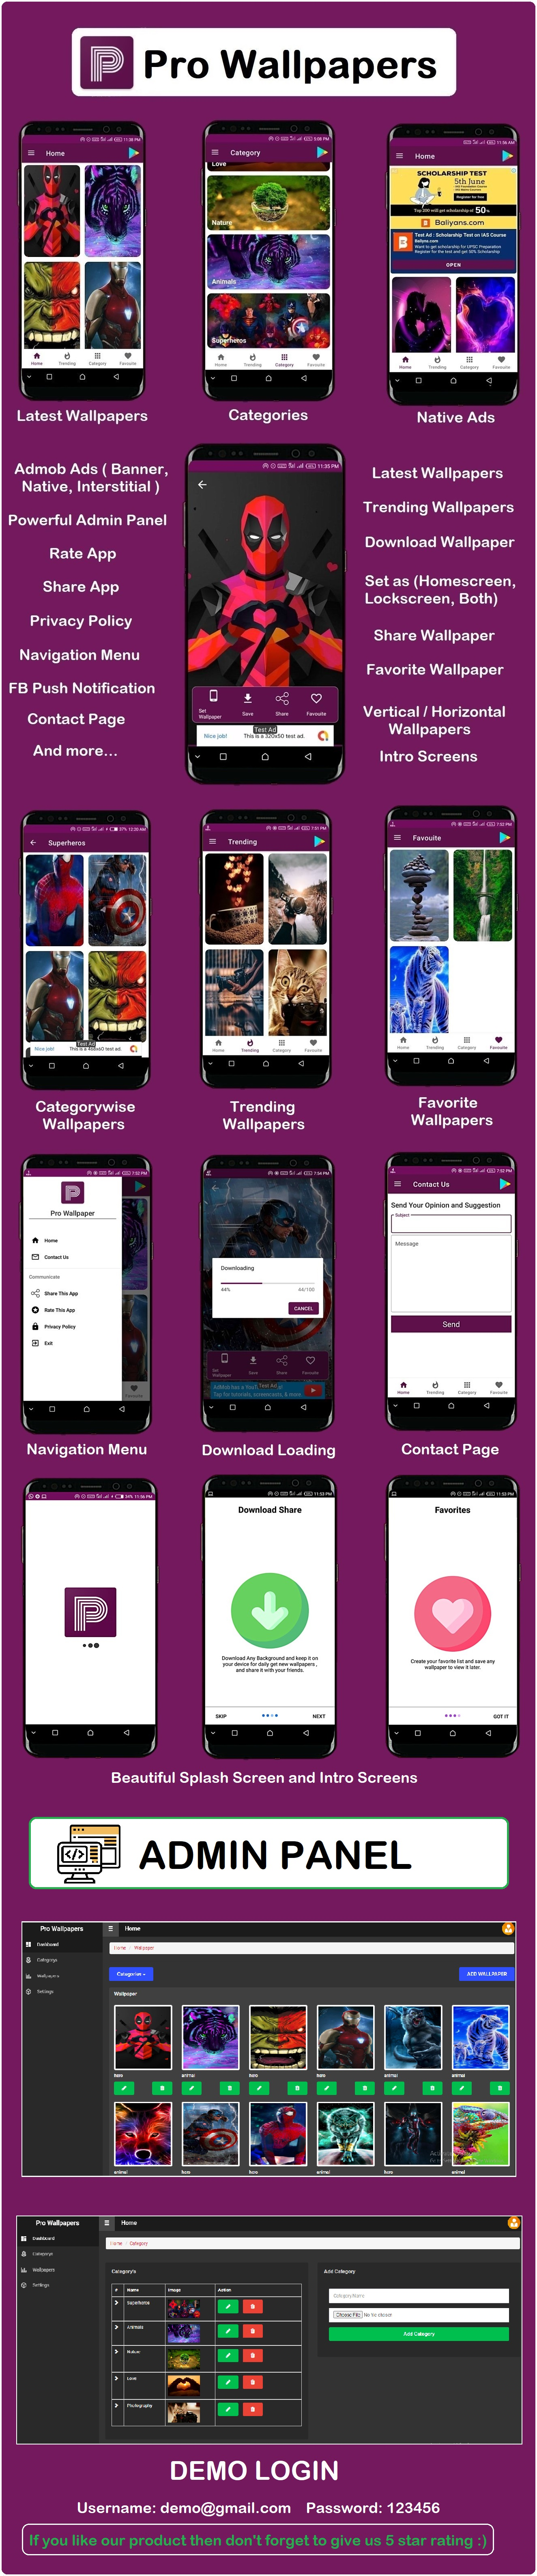 Pro Wallpapers Android App with Admin Panel - 5